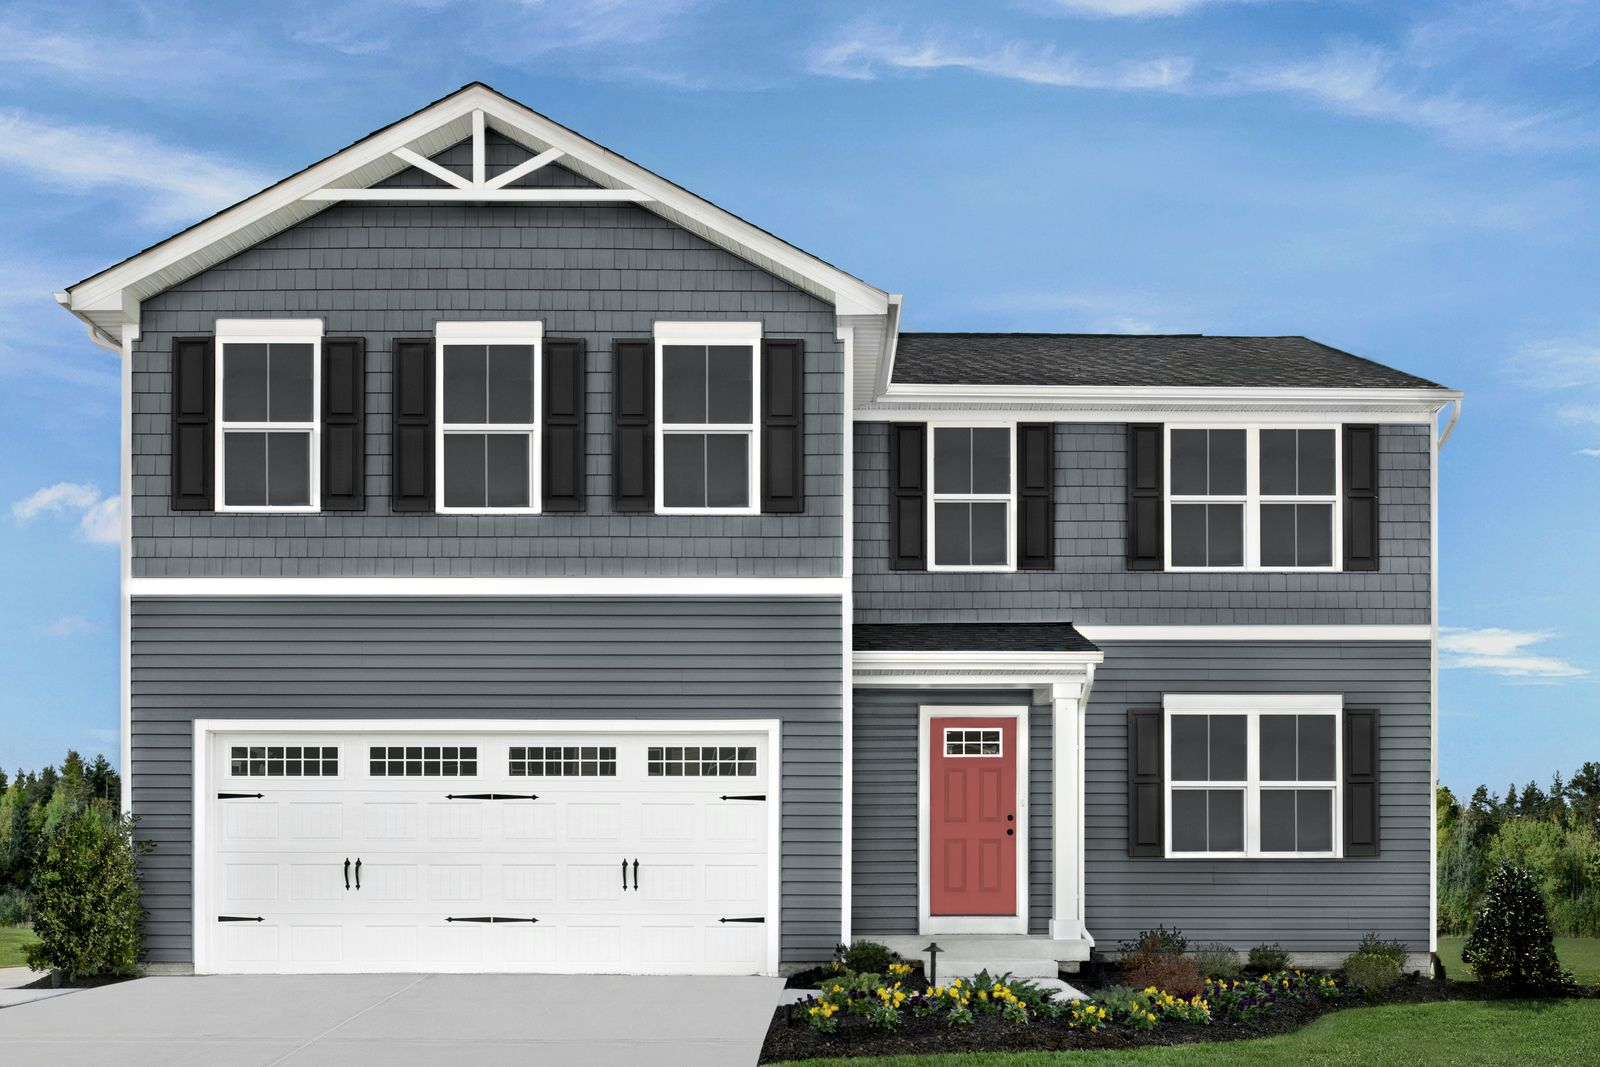 New 2-Story Homes Coming to Greenfield Late 2021, Mid $200s:Own a new 2-story home with all appliances included in Greenfield.Click here to join the VIP list to receive community updates and even the first chance to purchase.